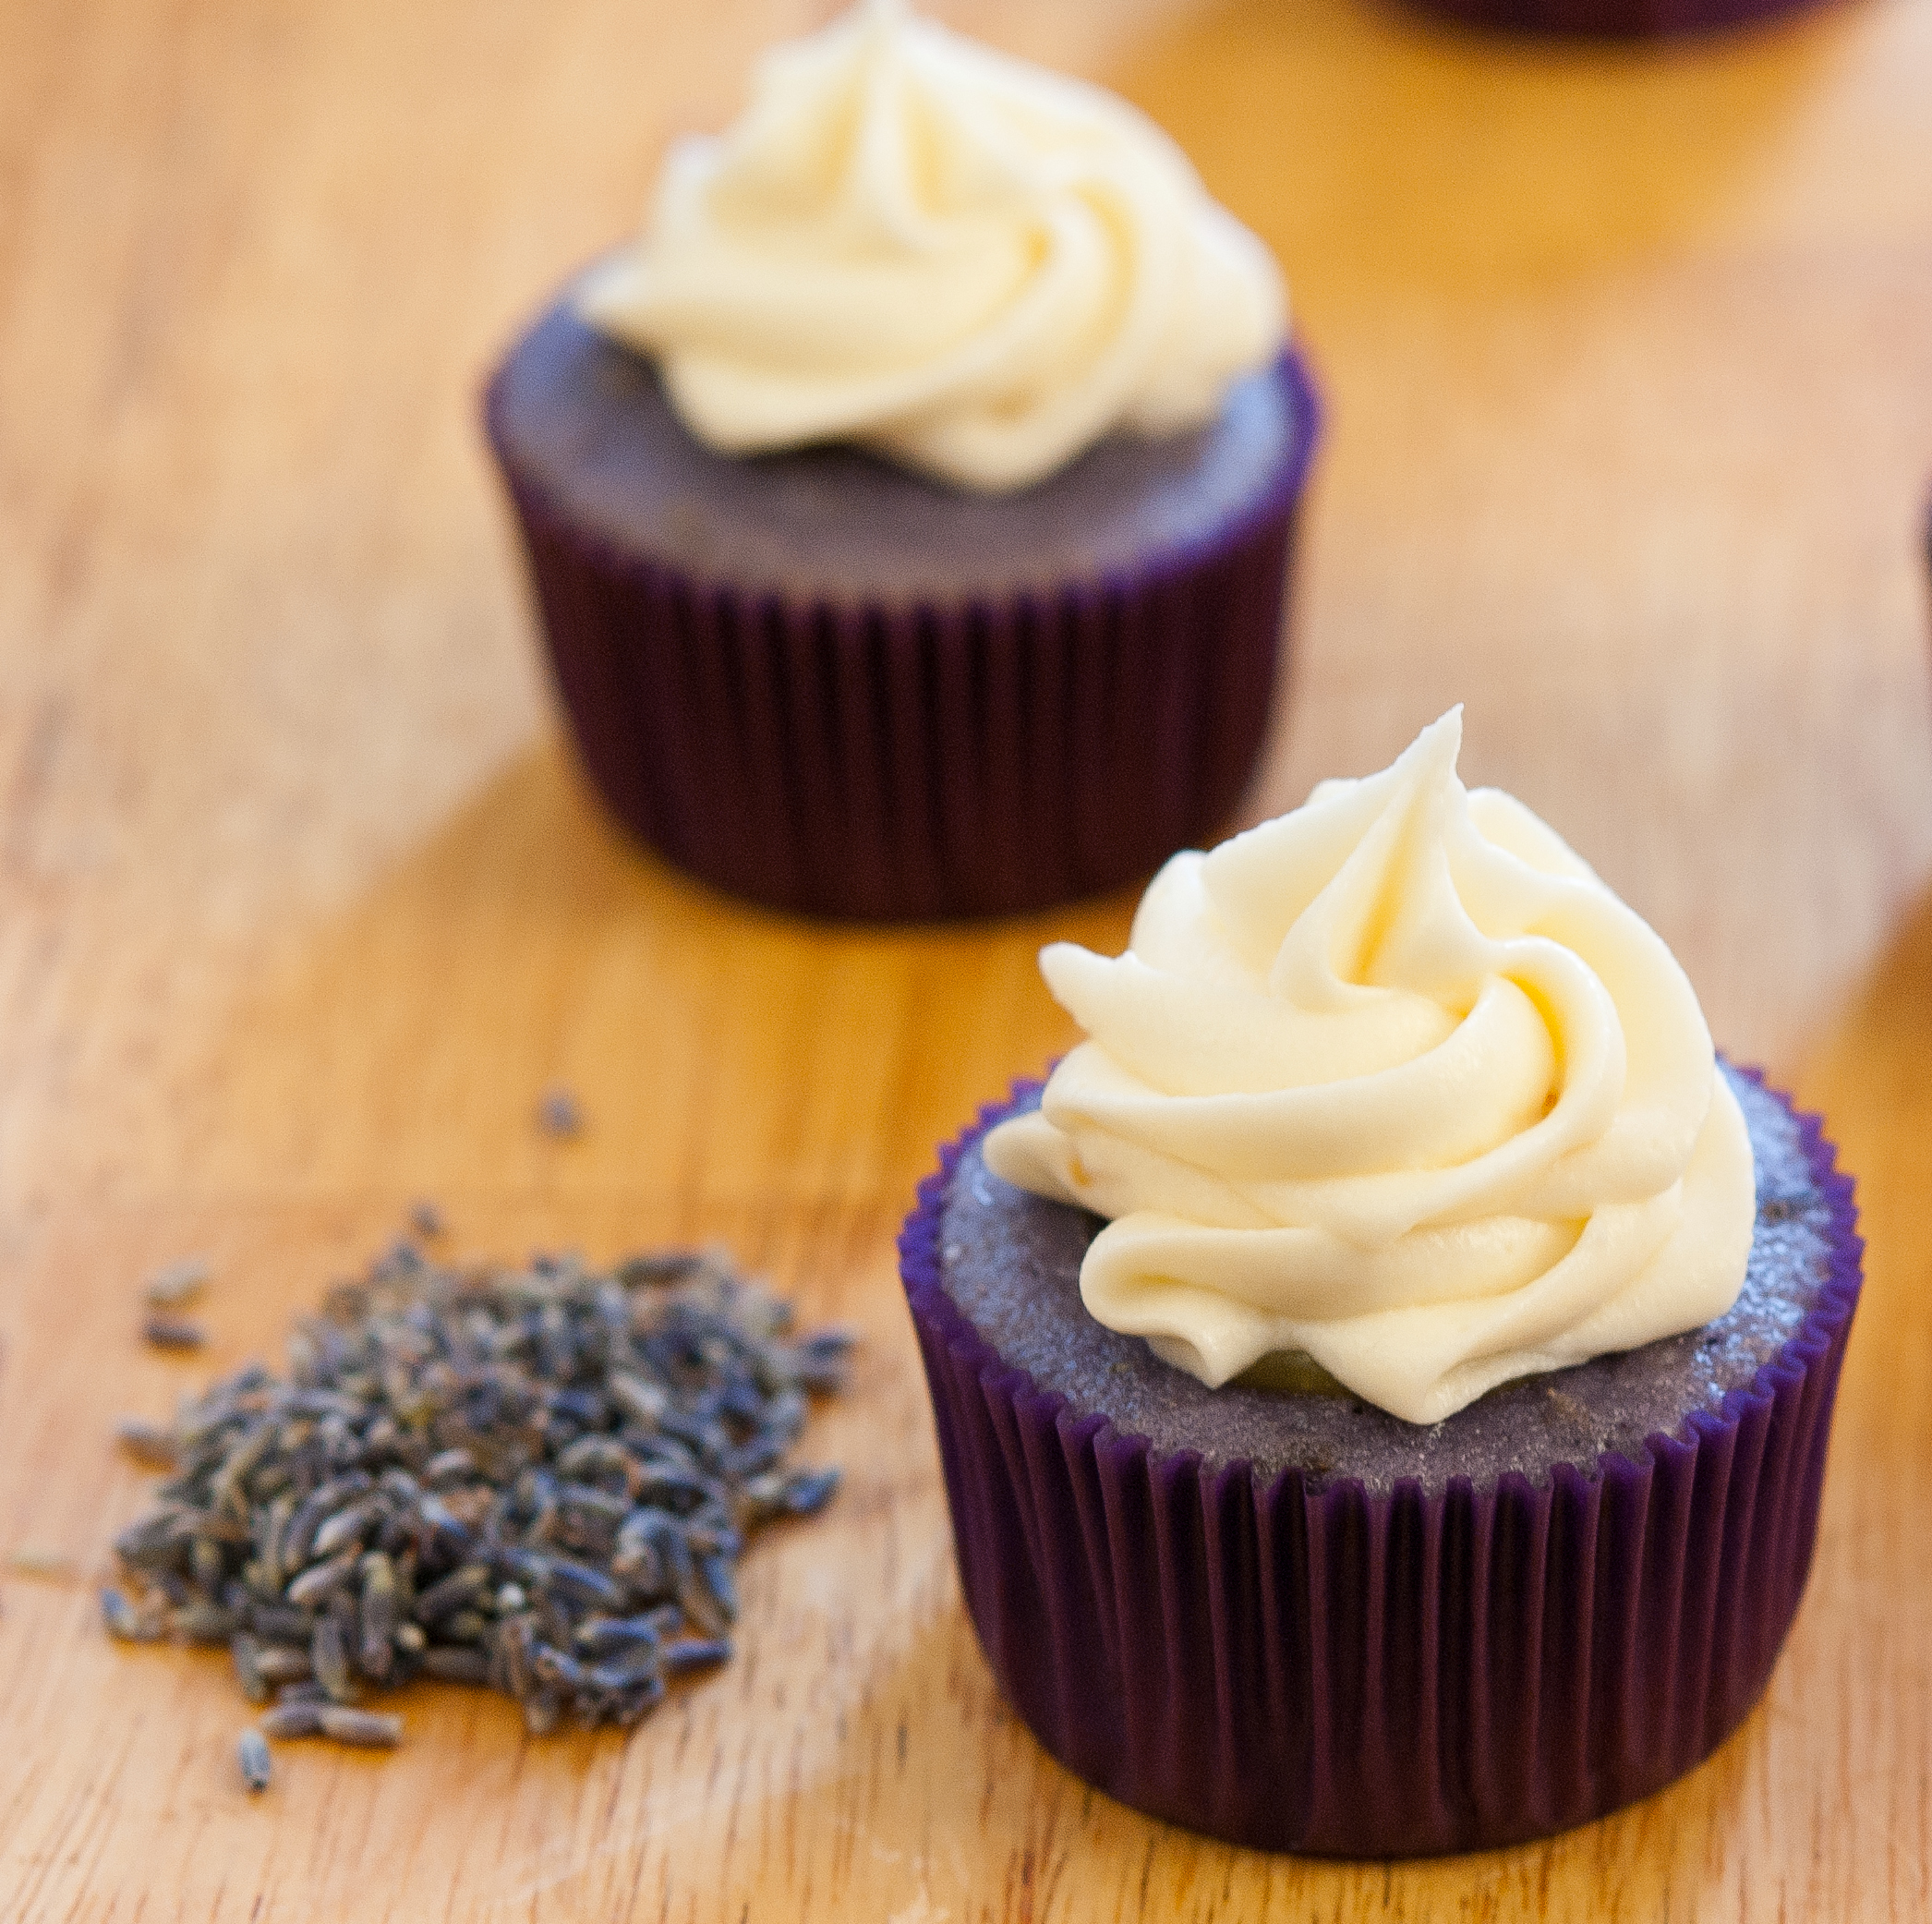 Lavender-Lemon Cupcakes with Honey Cream Cheese Frosting - Baked In